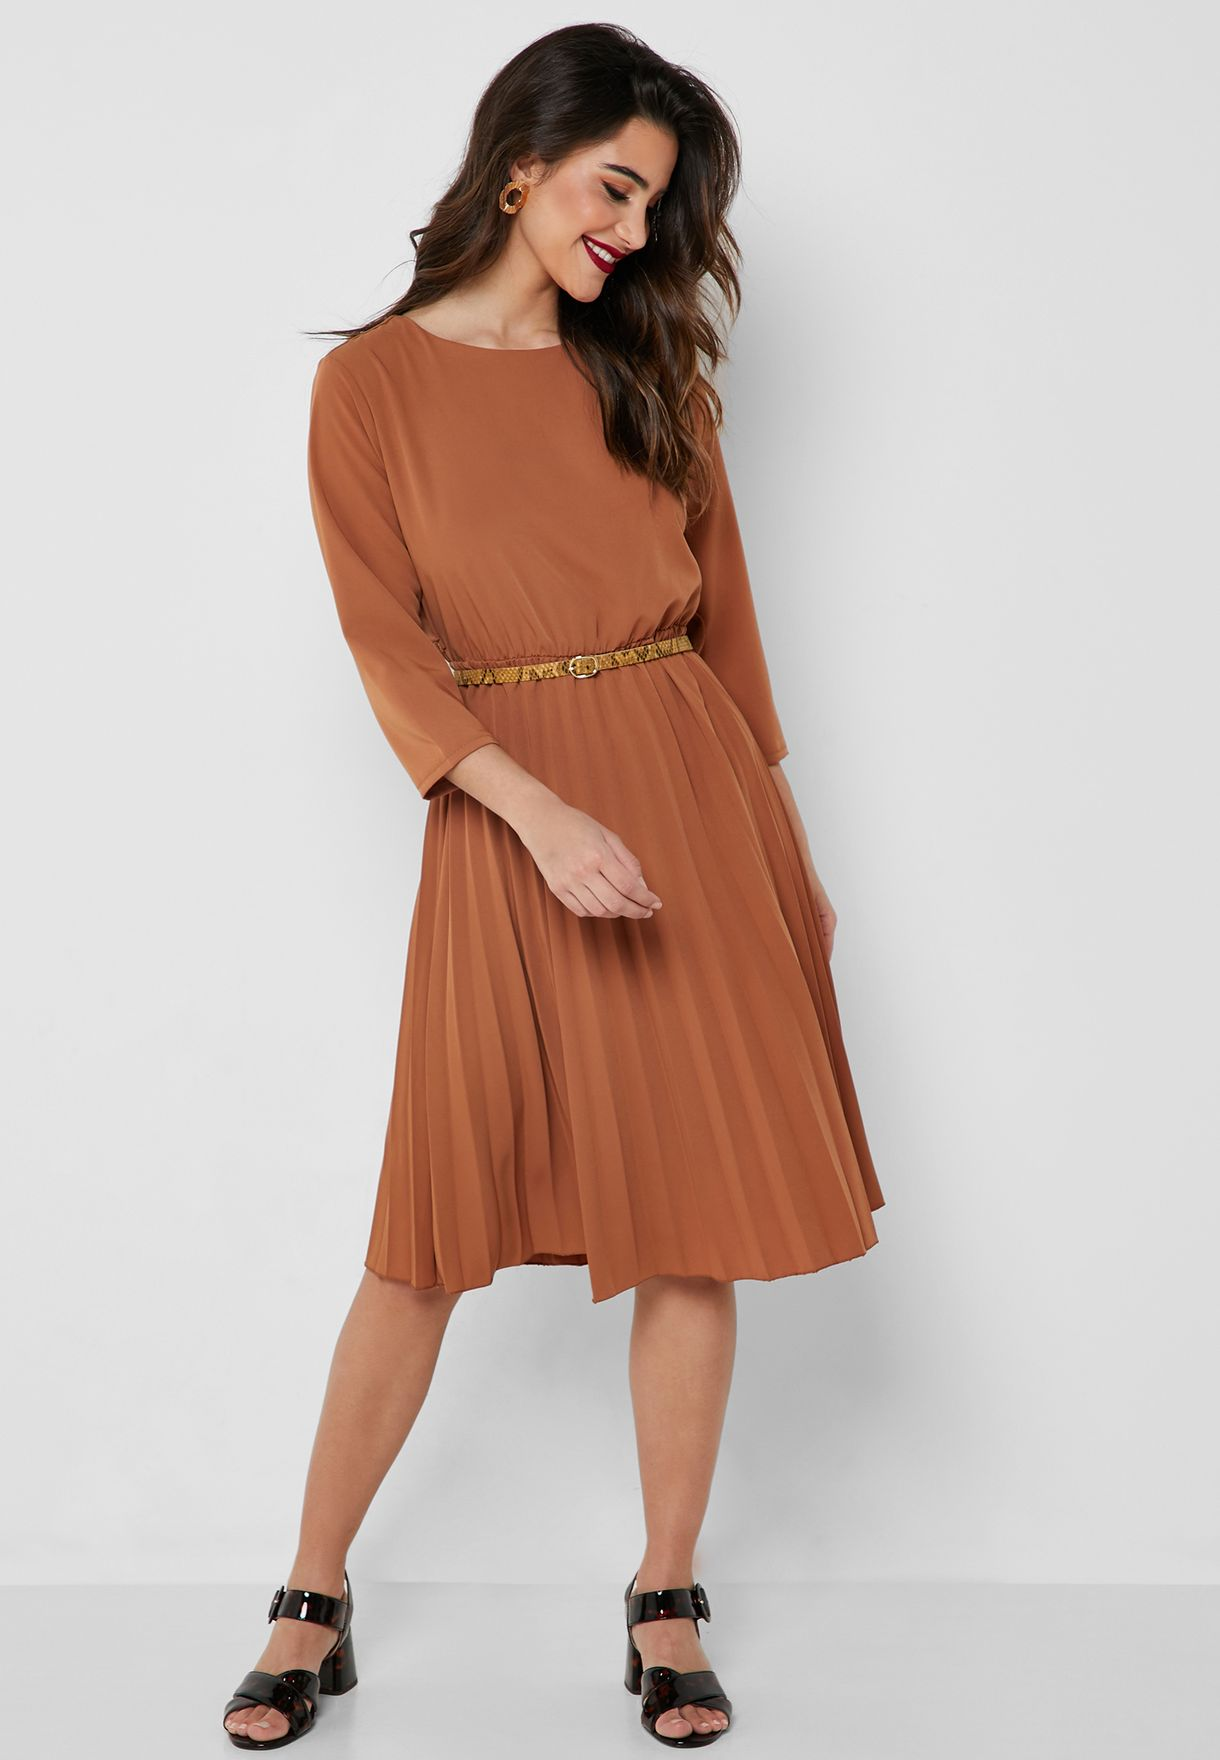 dd583470d4a3 Shop Ella brown Pleated Skirt Belted Midi Dress 9212 for Women in ...